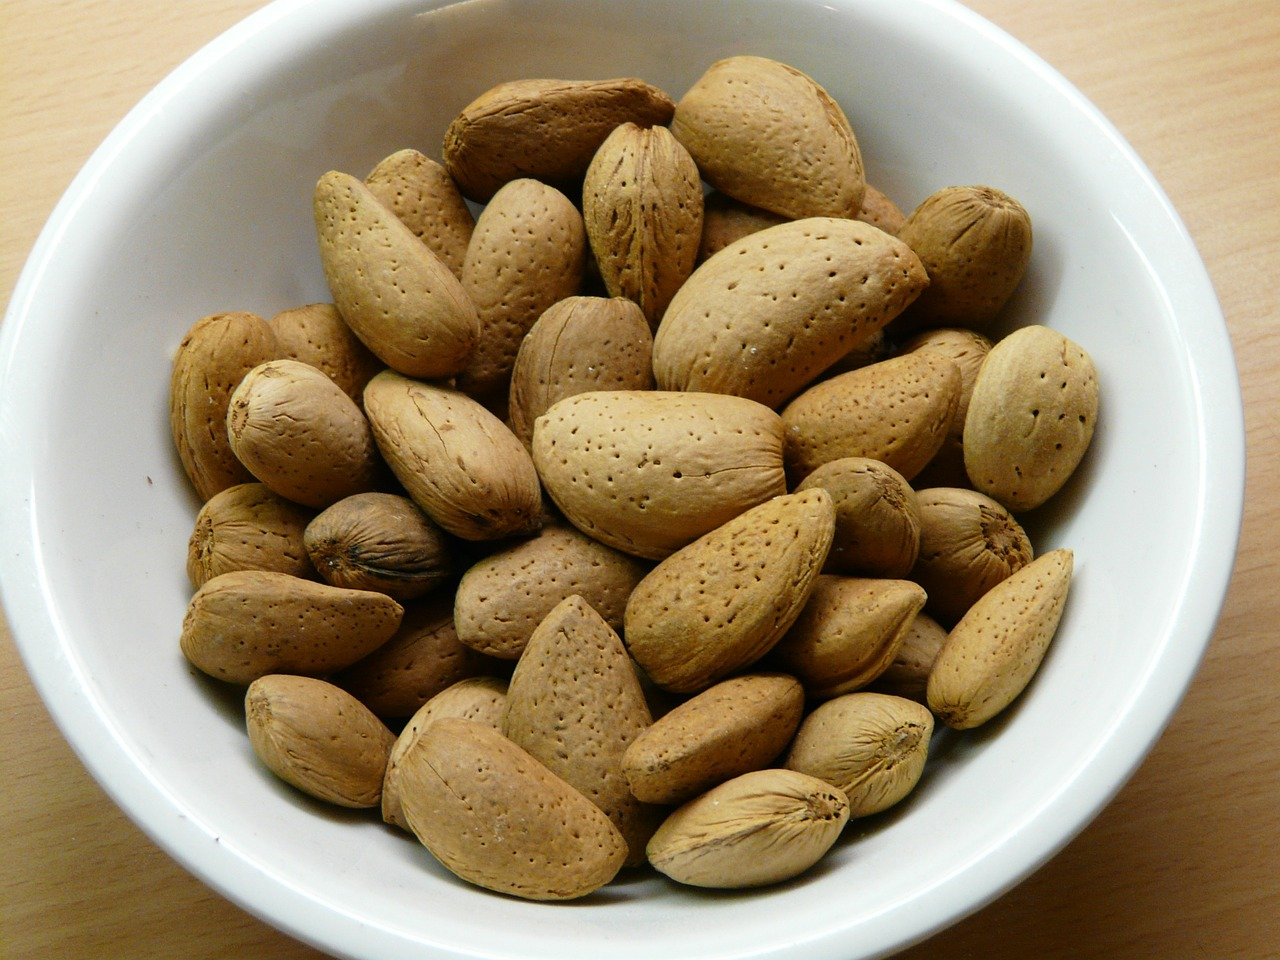 almonds,nuts,shell,food,almond bowl,free pictures, free photos, free images, royalty free, free illustrations, public domain